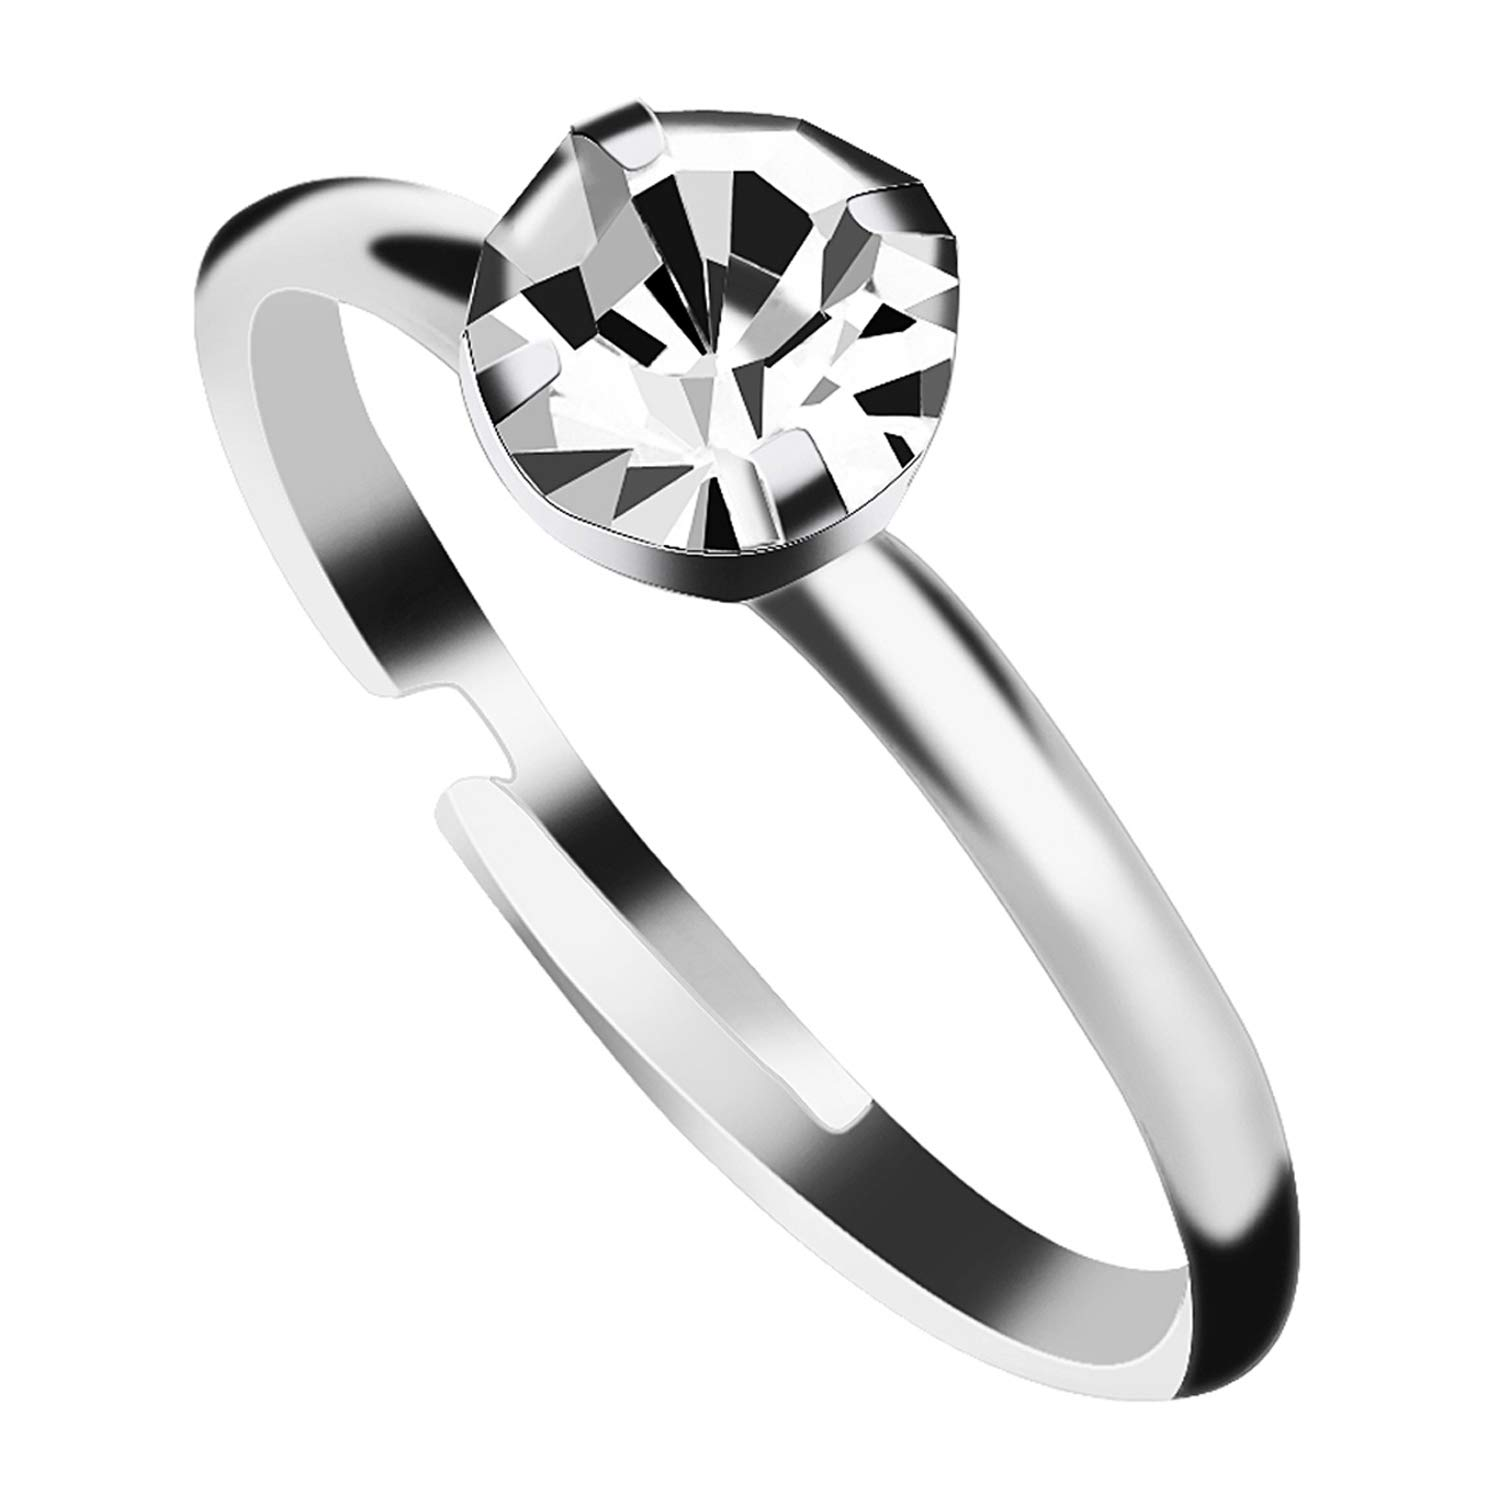 Amazon Aboat 100 Pack Silver Diamond Bridal Shower Rings For Wedding Table Decorations Party Favors Toys Games: Cake Topper Wedding Silver Diamond Ring At Websimilar.org